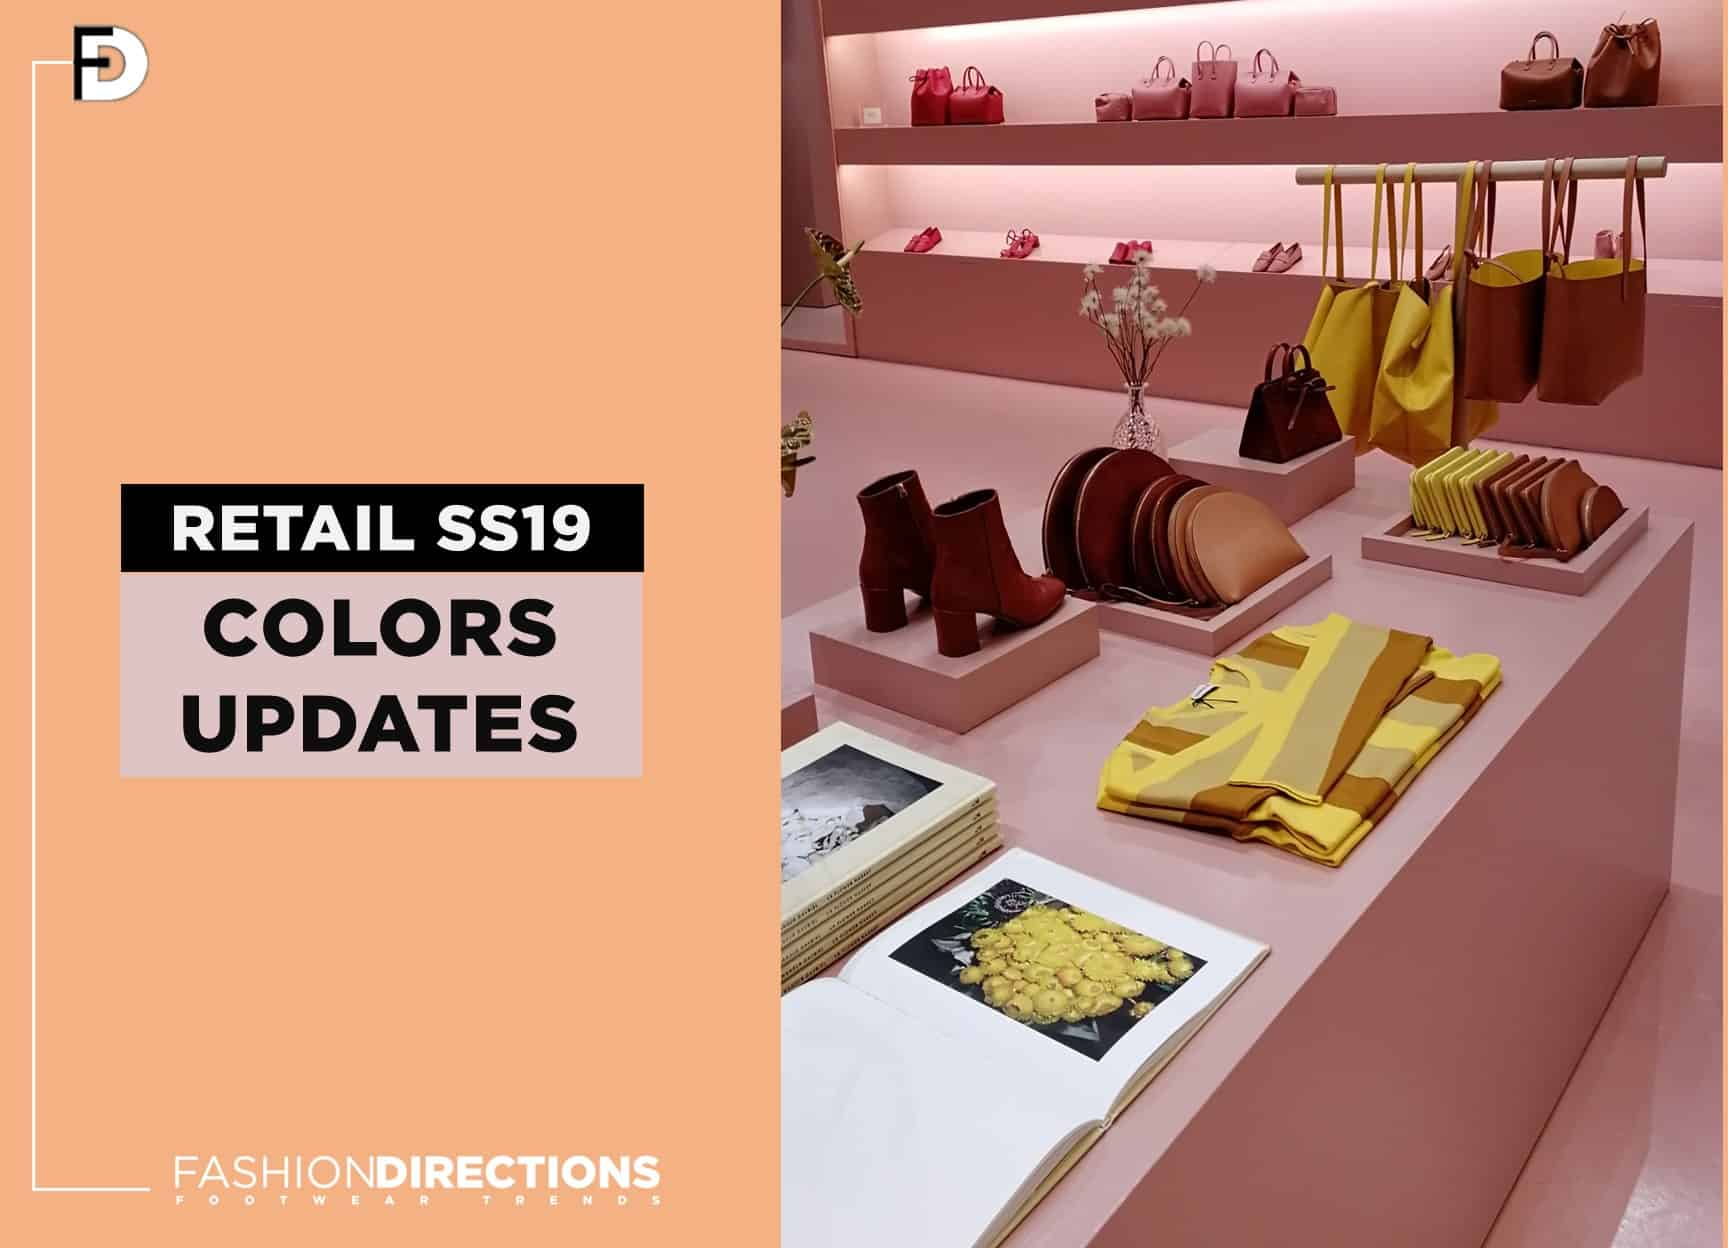 SS19 colors 2